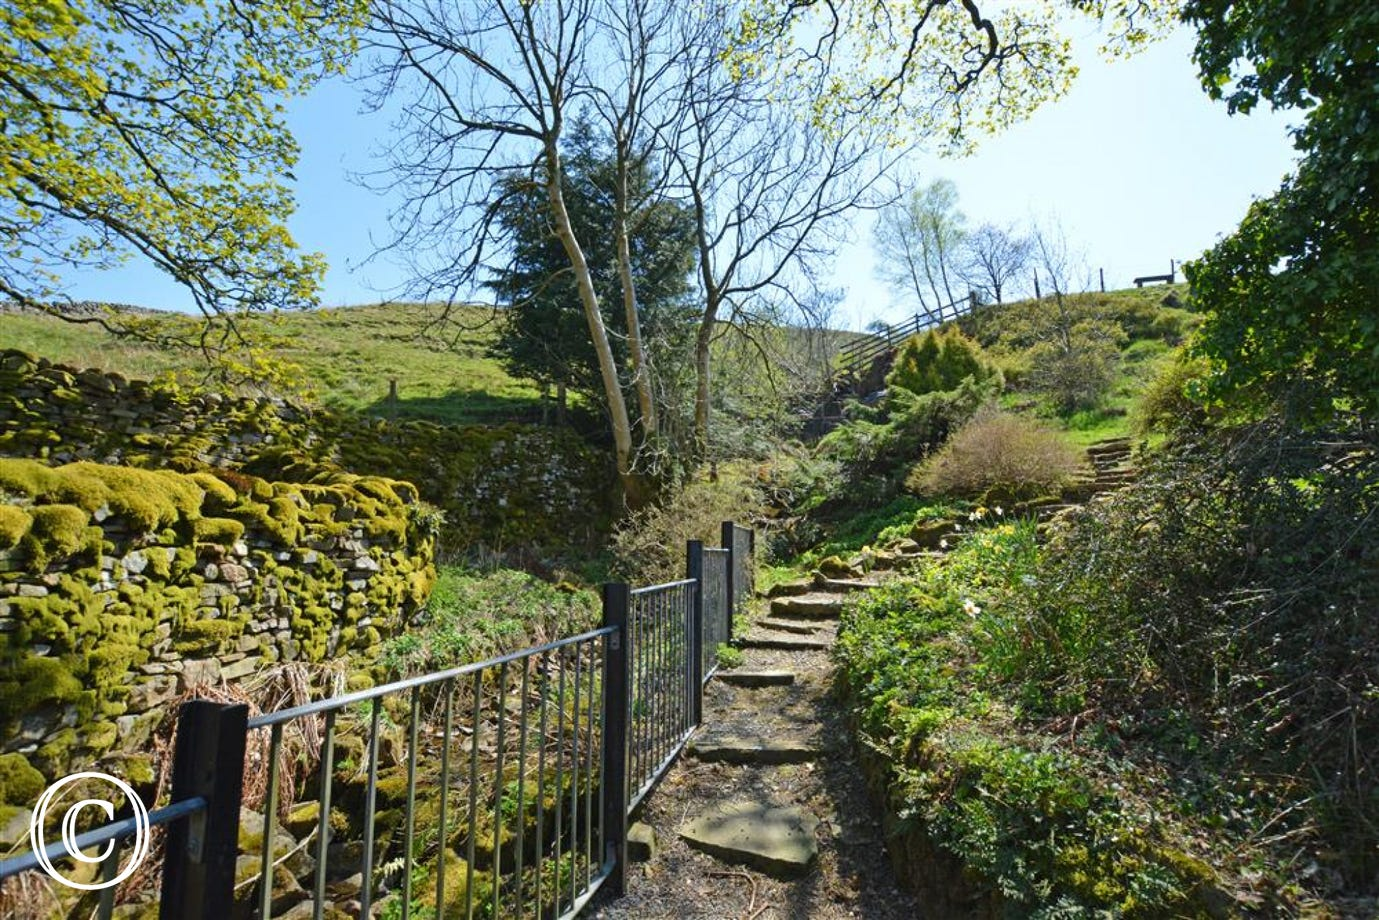 The garden steps by the stream at Ingheads